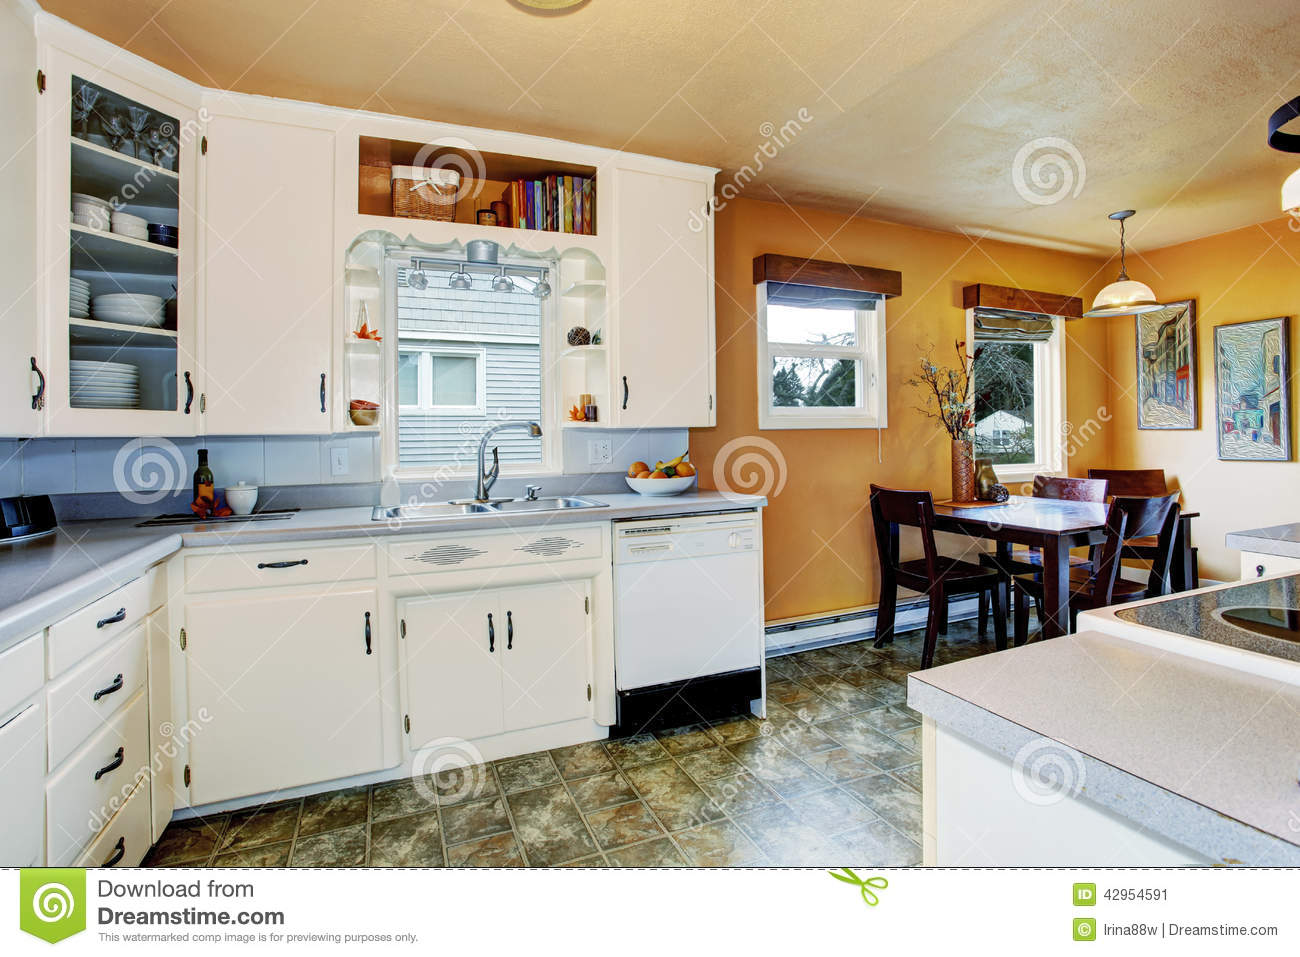 Kitchen Room With Dining Area In Old House Stock Photo